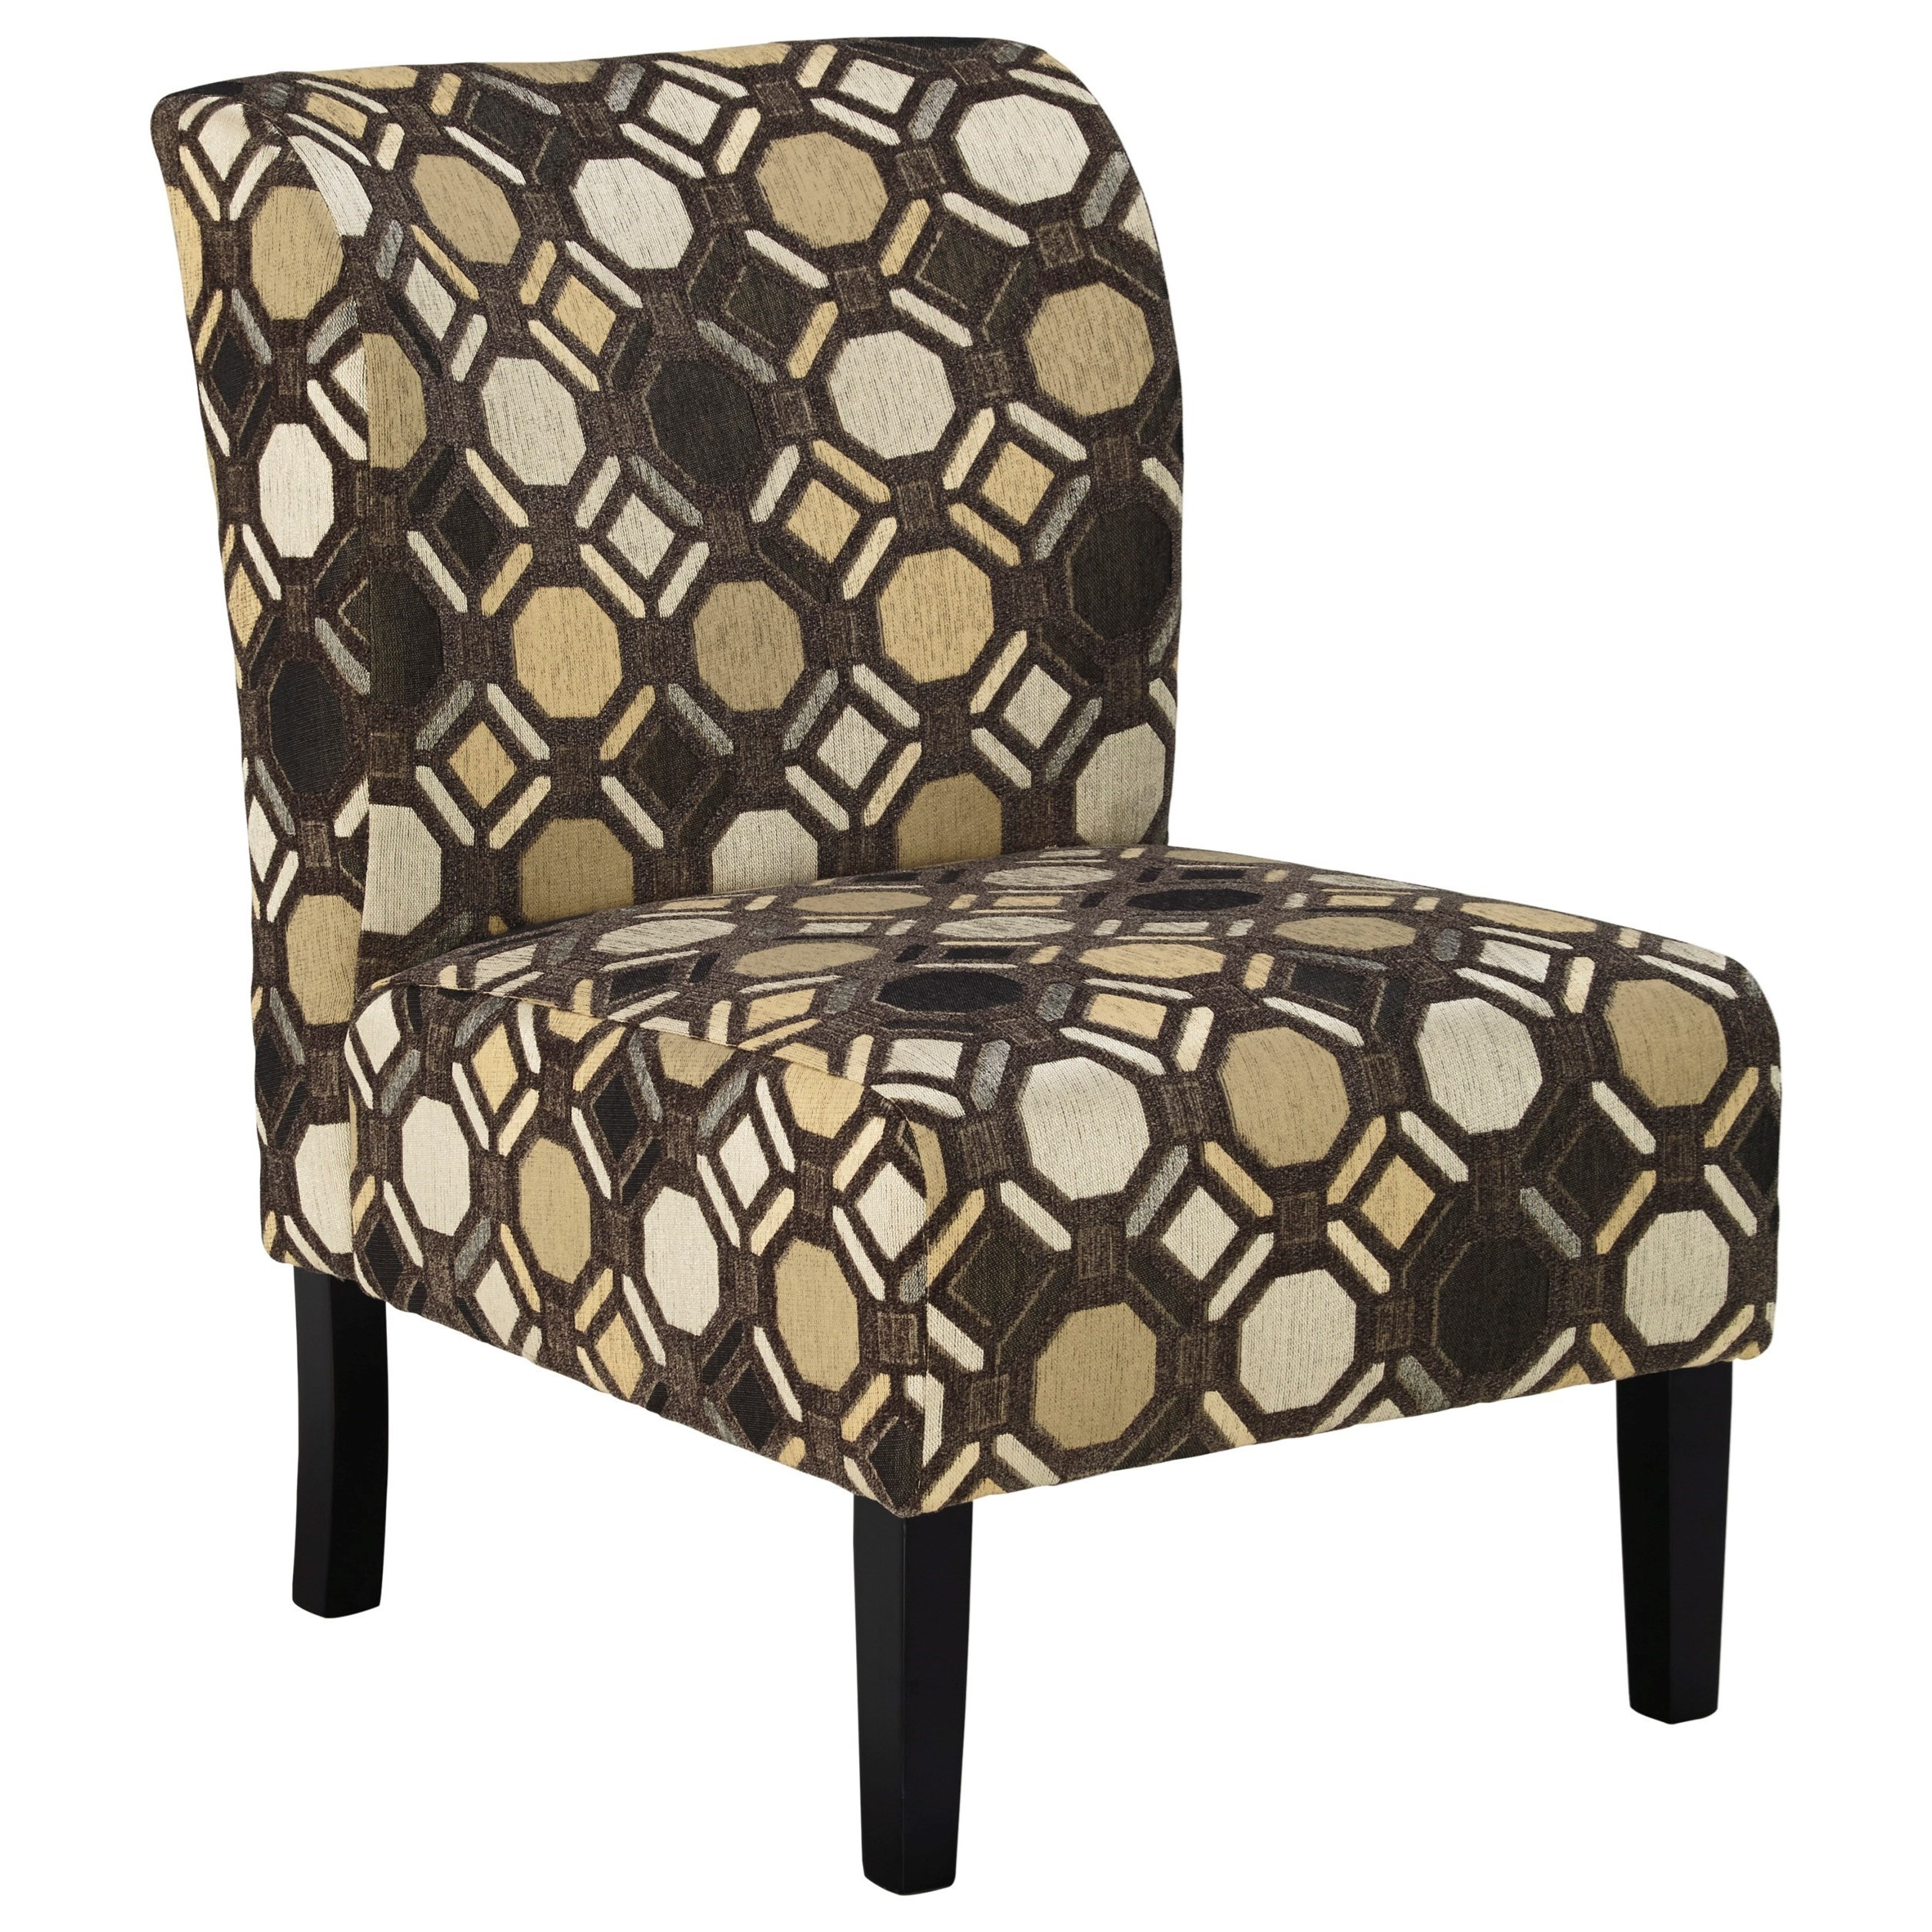 Signature Design By Ashley Tibbee 9910160 Accent Chair